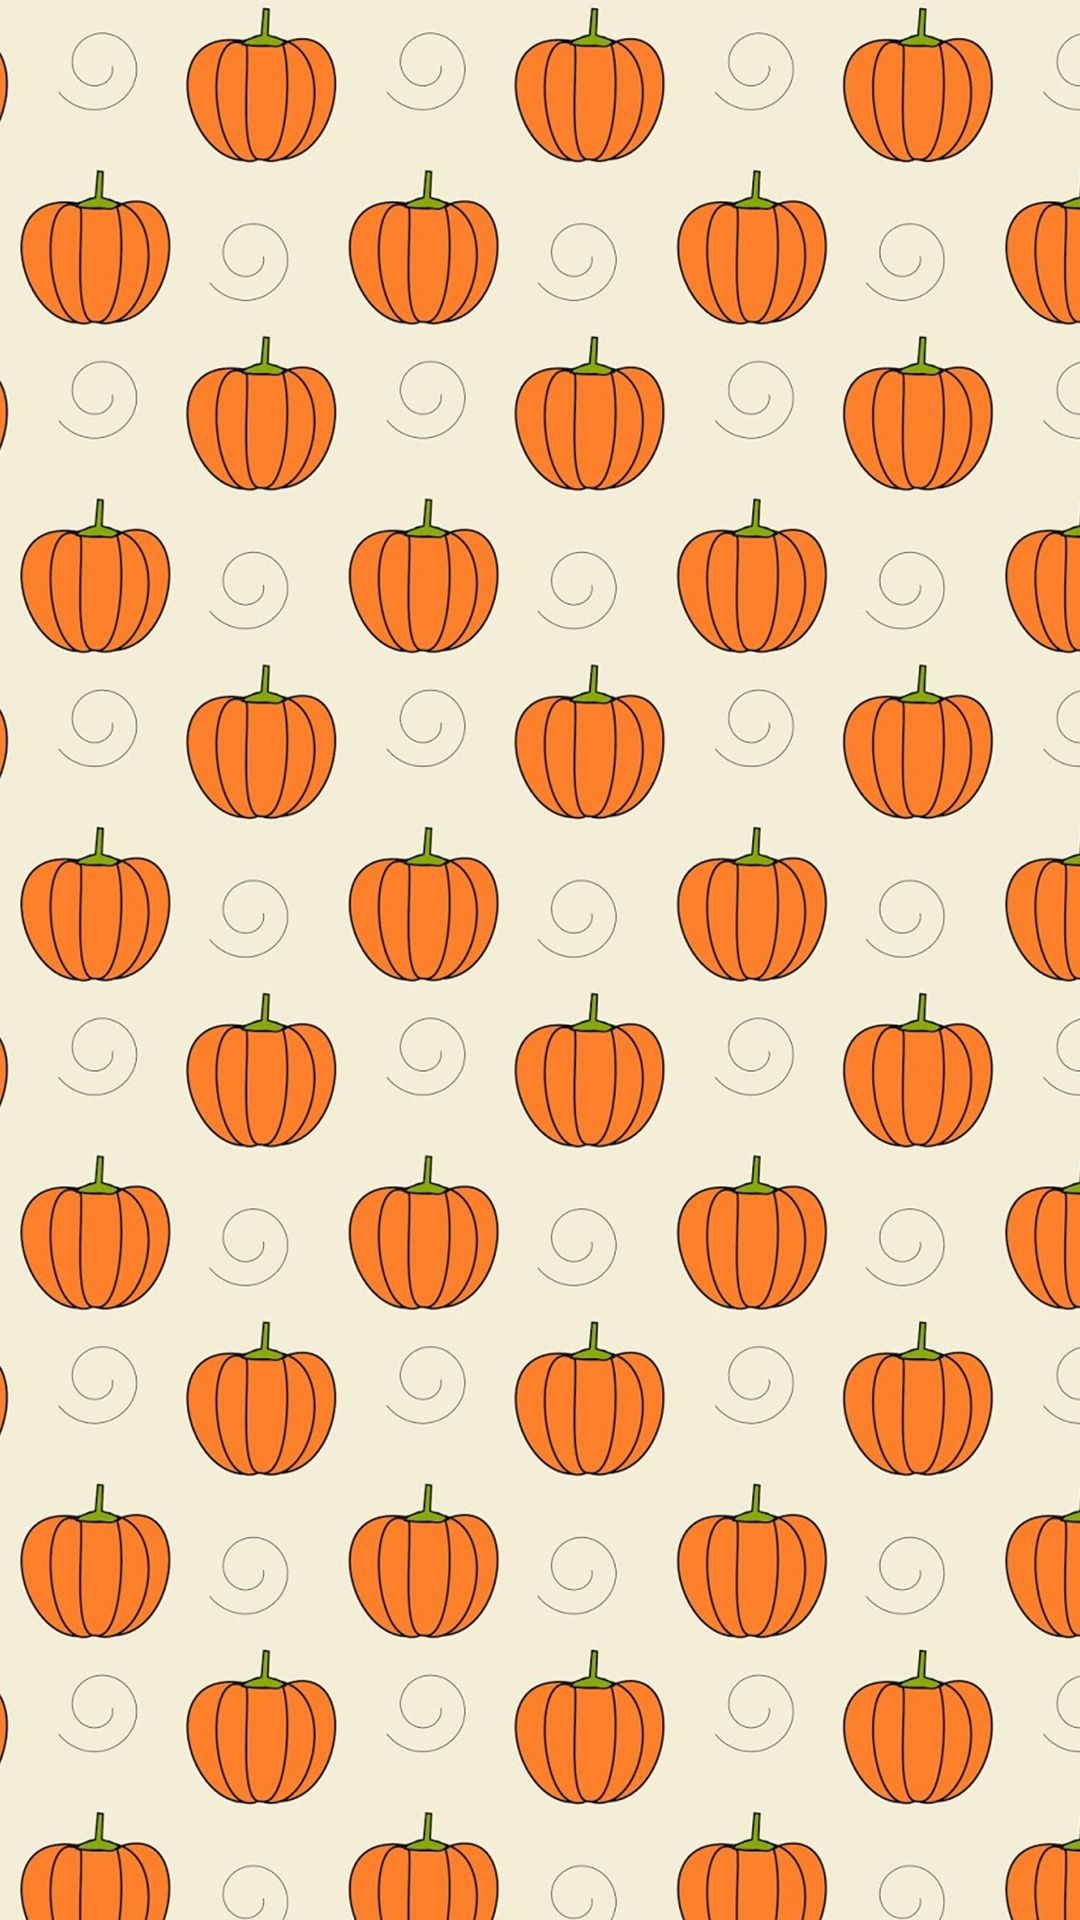 Pumpkins Tap To See More Cute Halloween Wallpaper Mobile9 Pumpkin Wallpaper Cute Fall Wallpaper Halloween Wallpaper